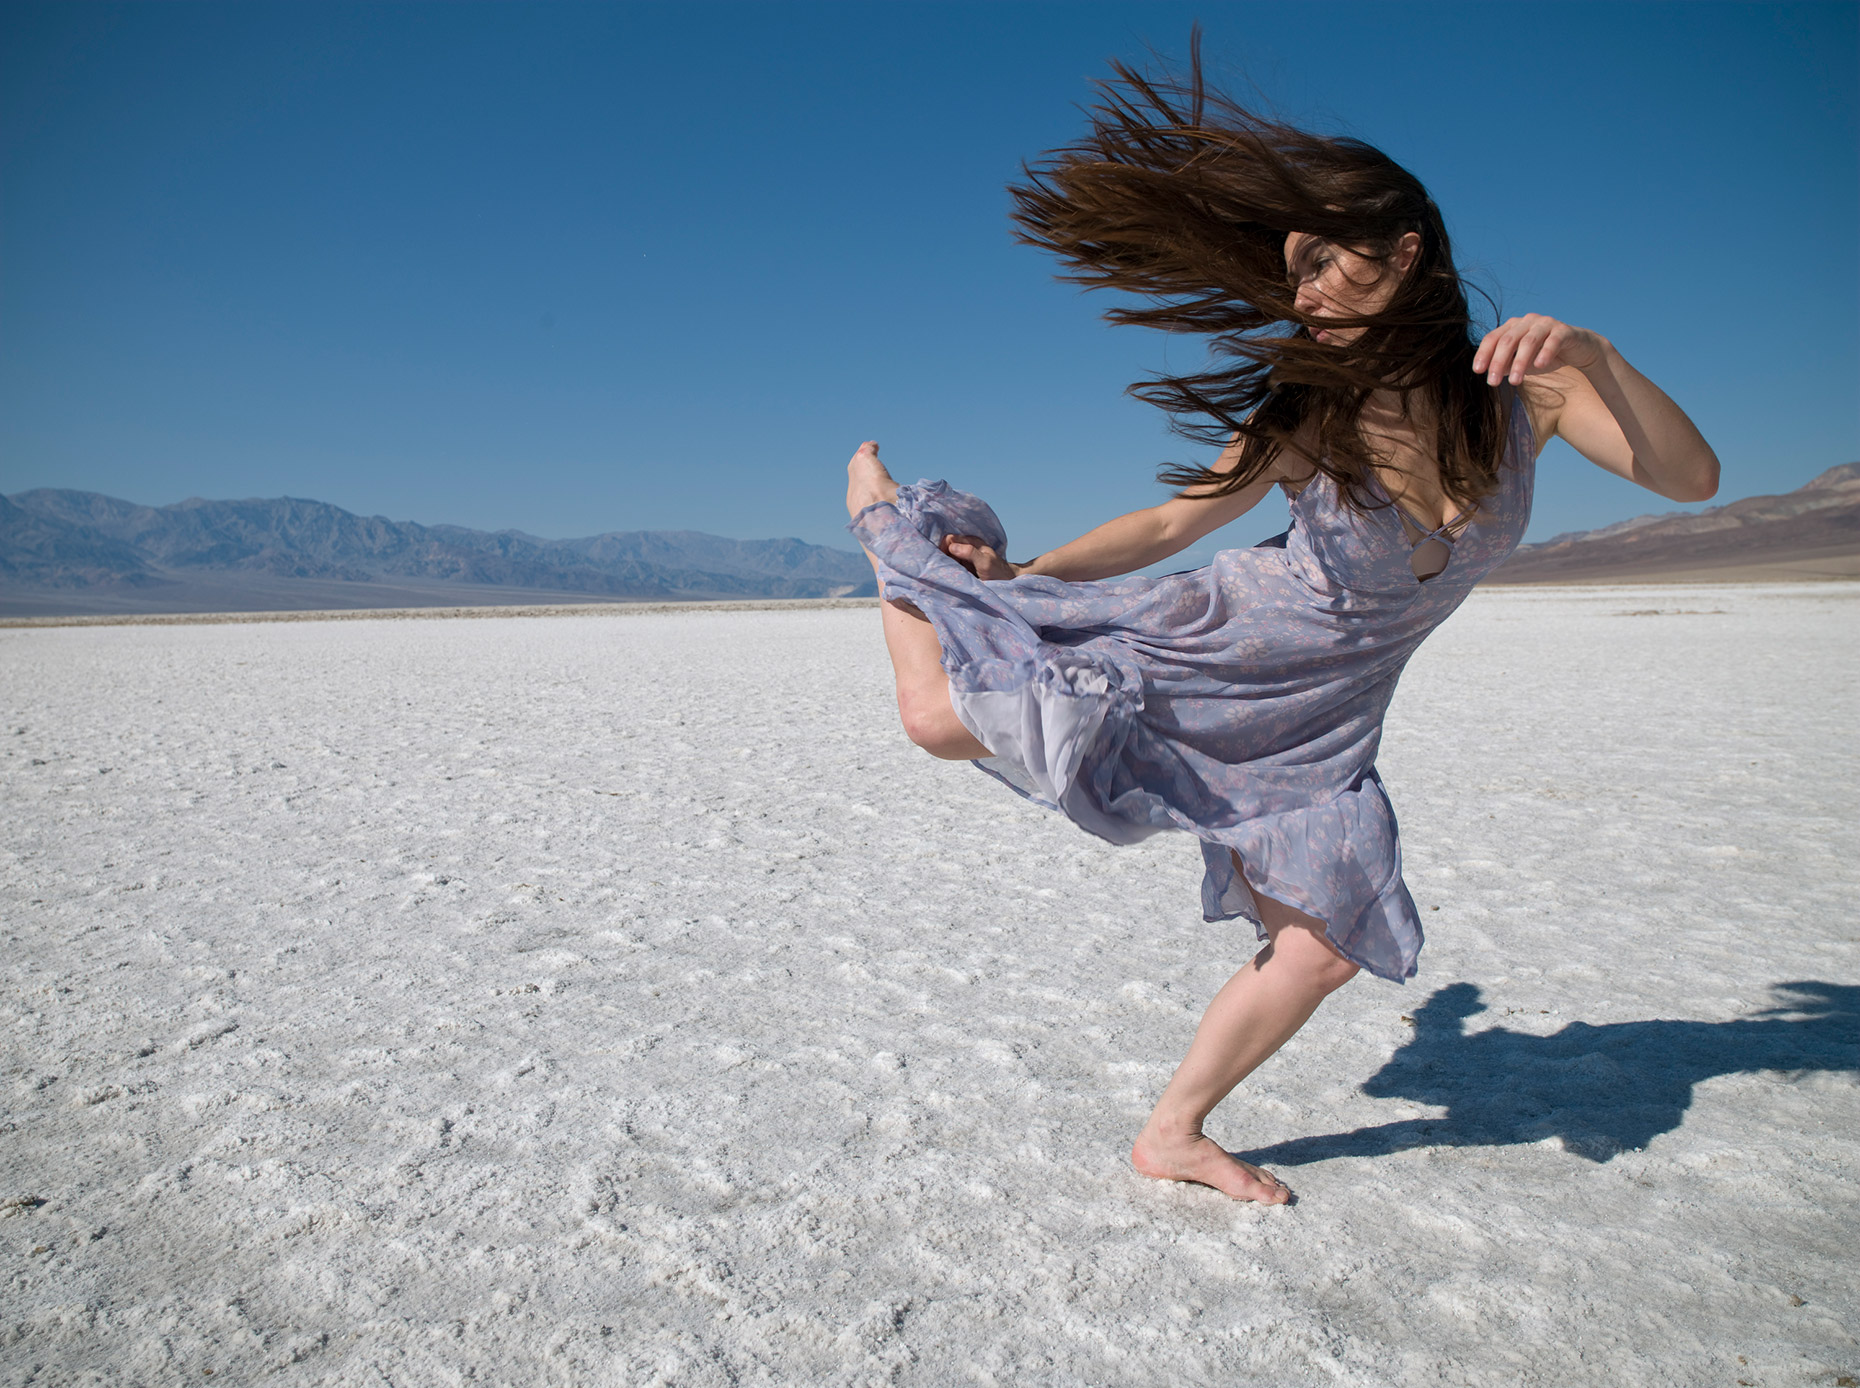 Dancer in a windy Death Valley dancing in the wind.